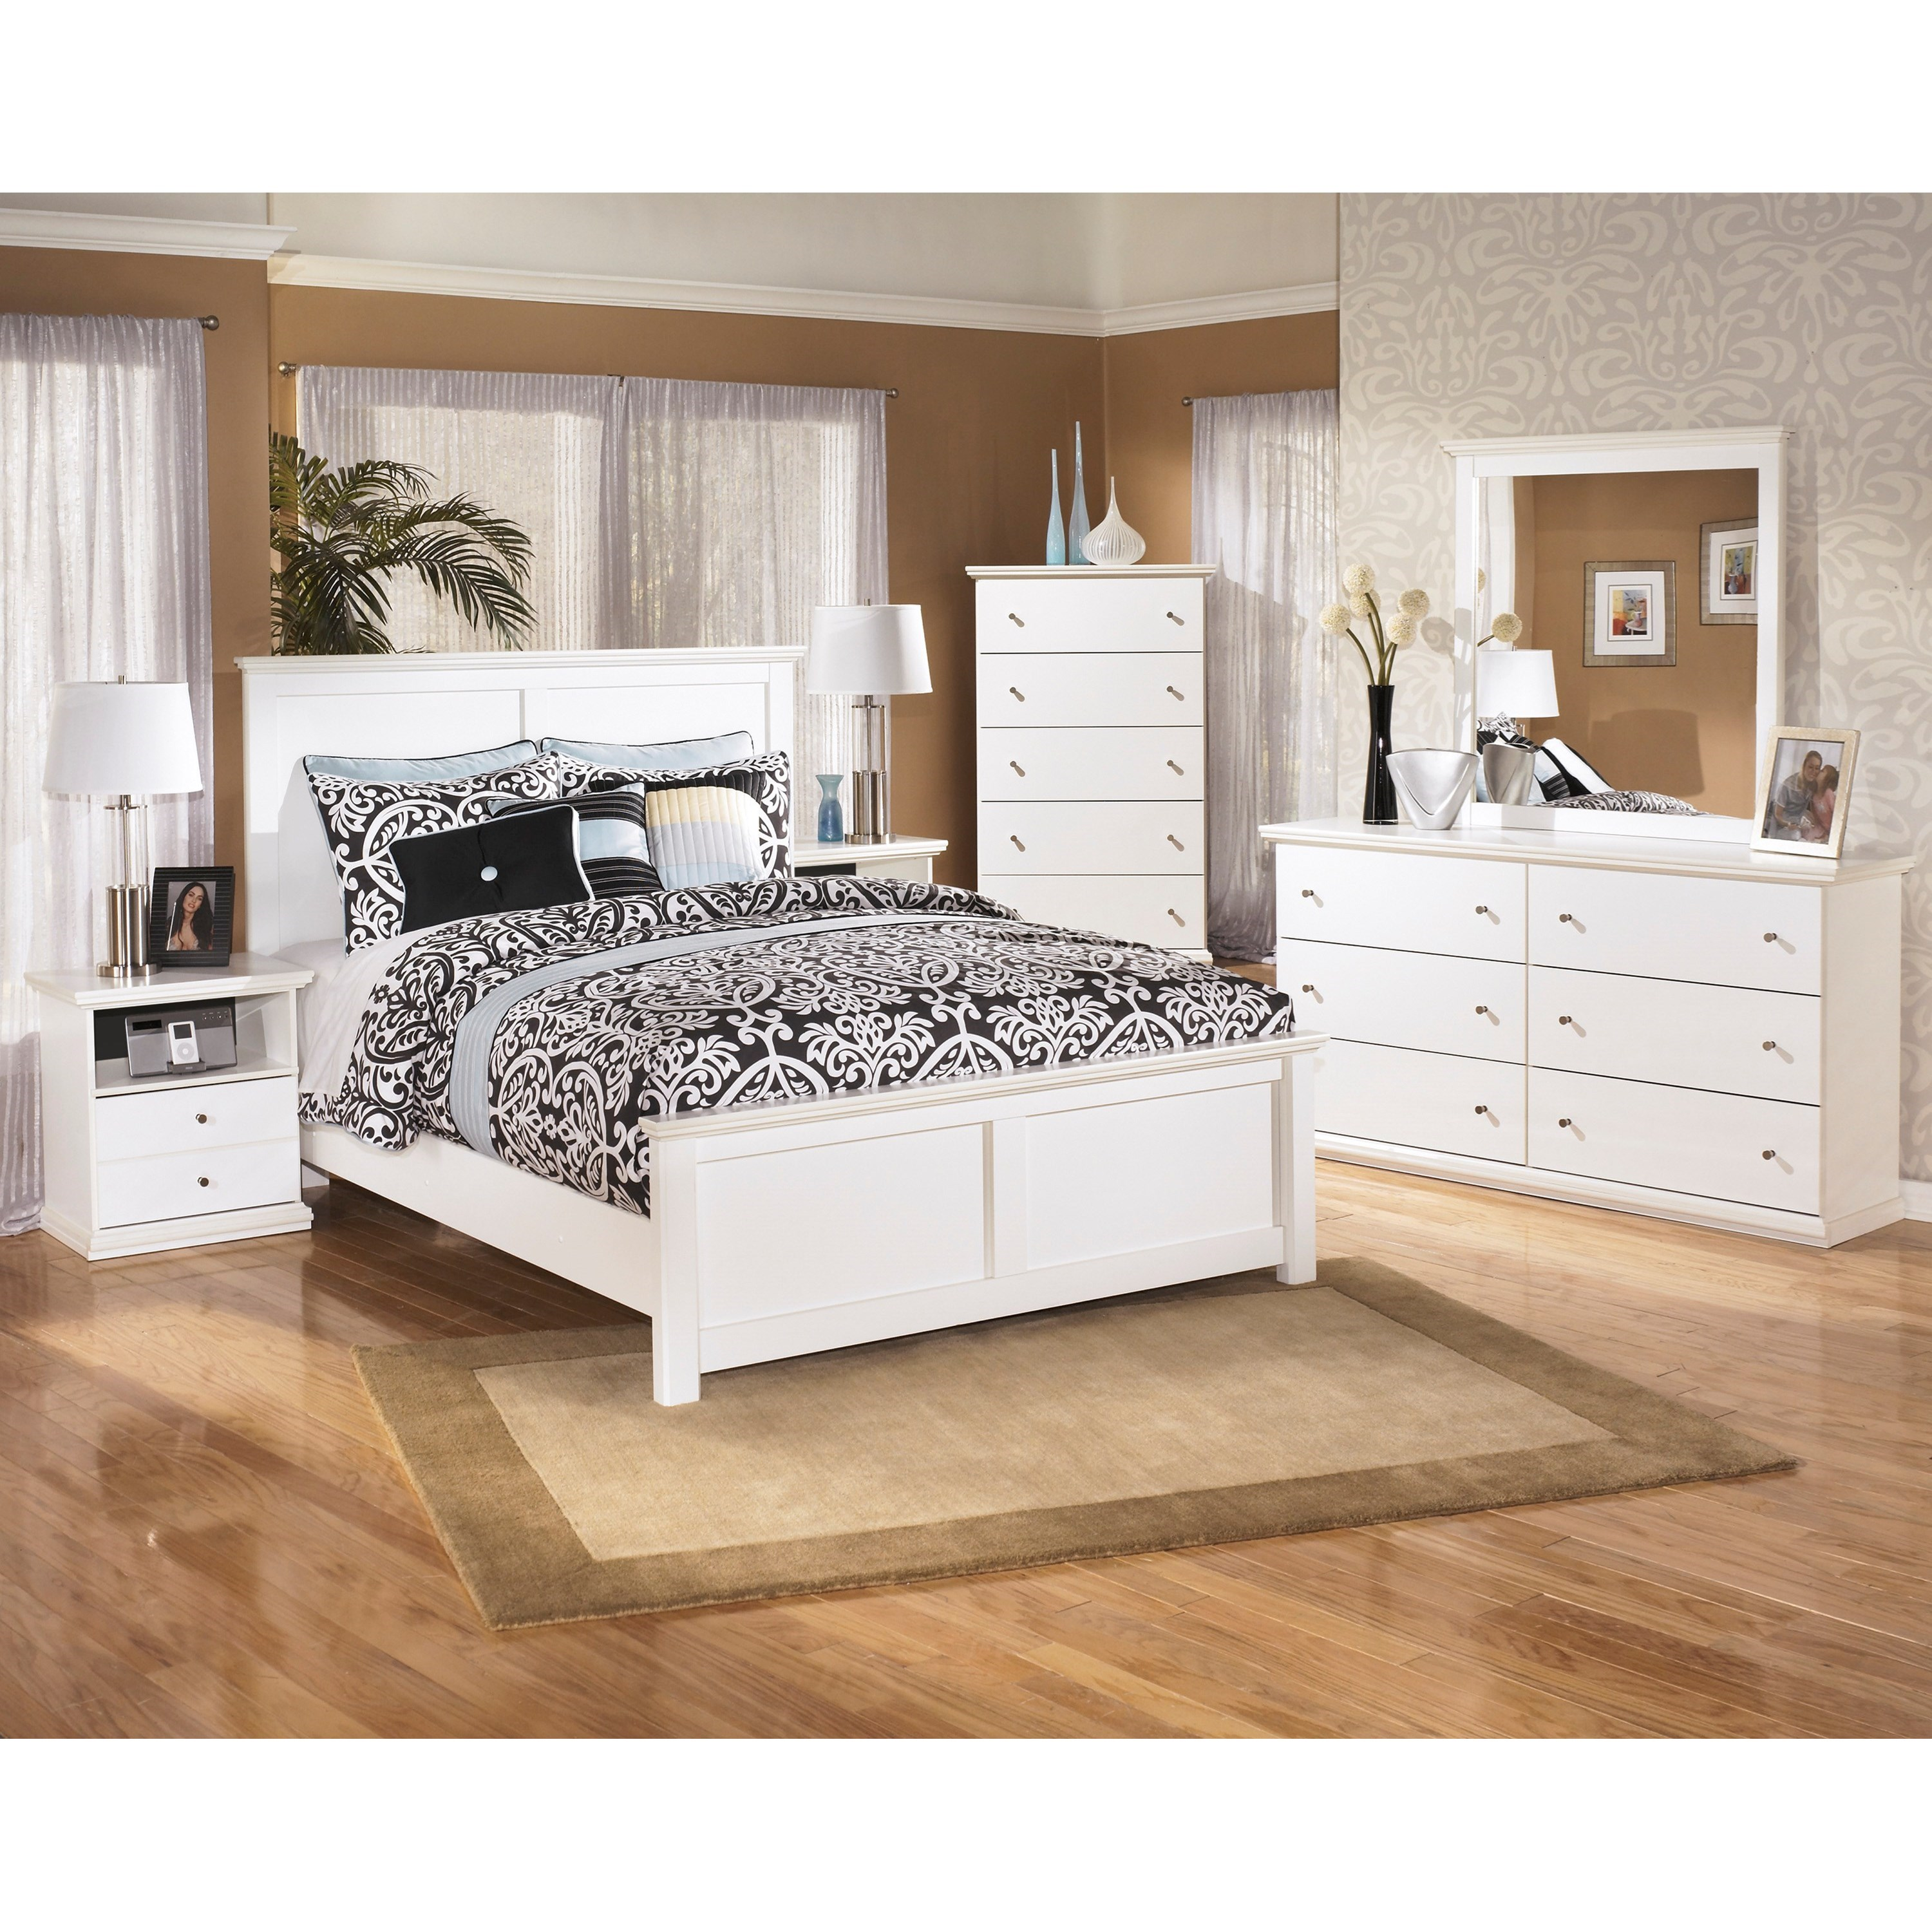 Bostwick Shoals Queen Bedroom Group by Signature Design by Ashley at Northeast Factory Direct